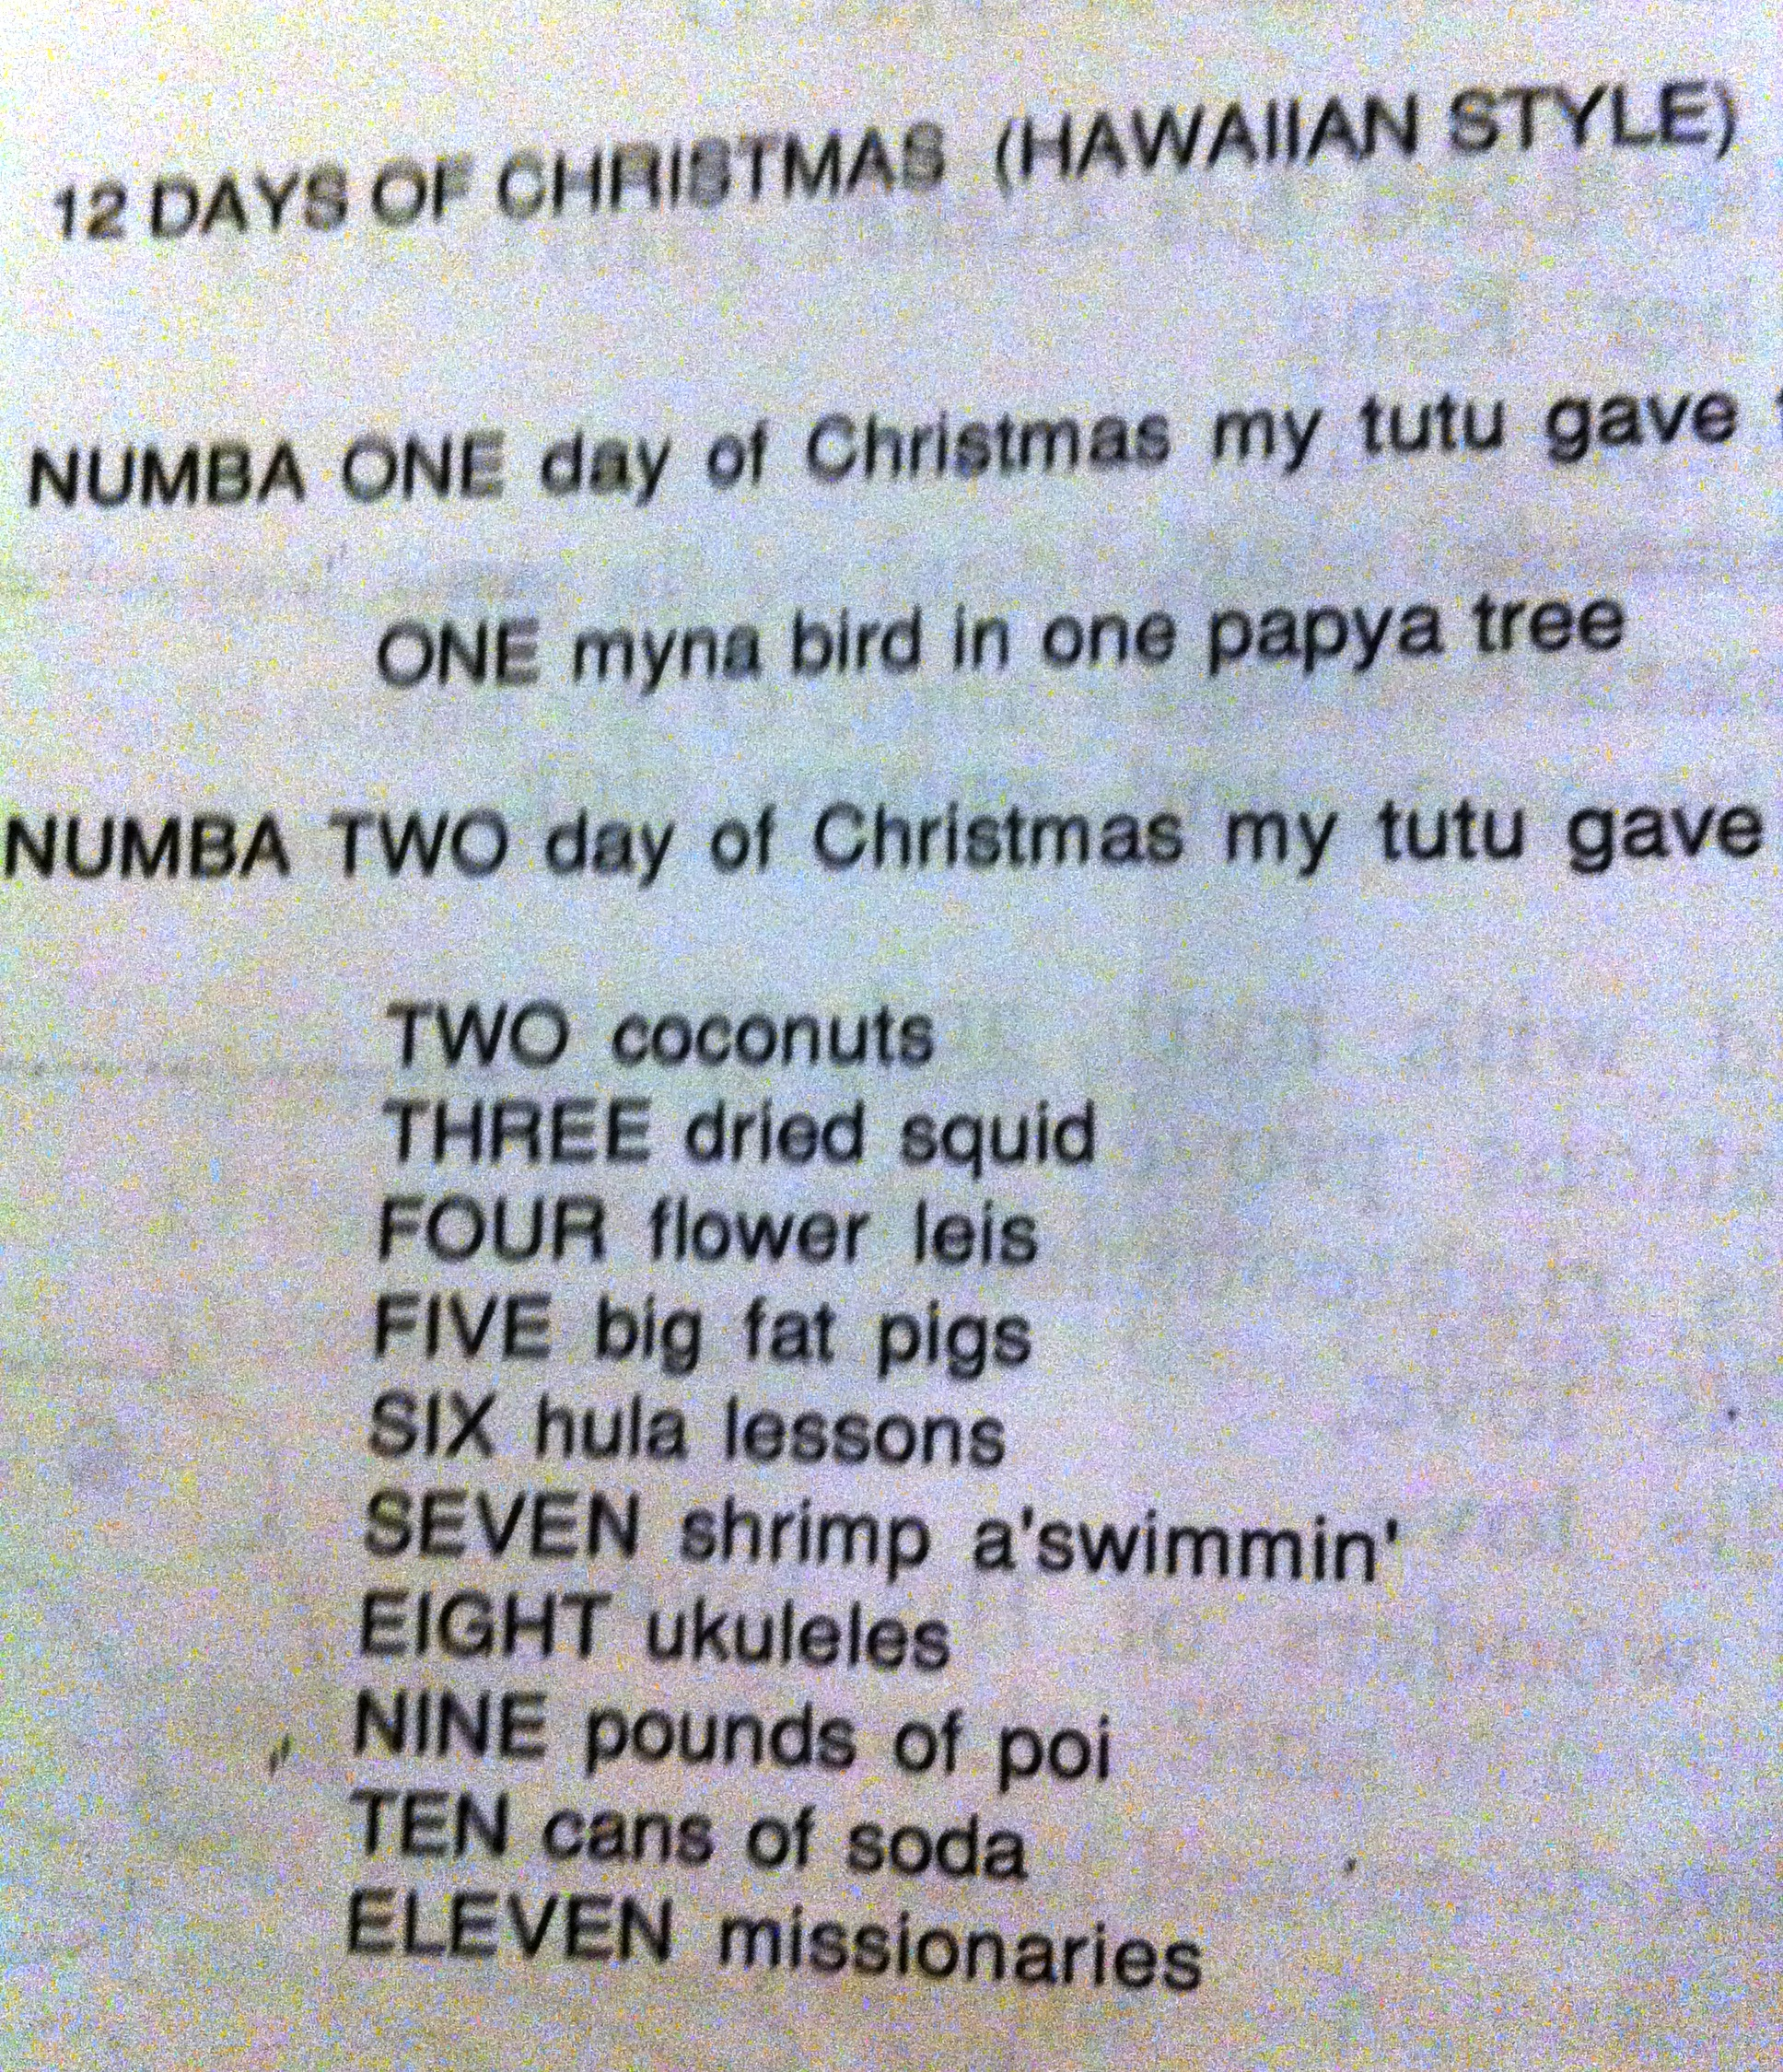 12 days of christmas - 12 Days Of Christmas Hawaiian Style